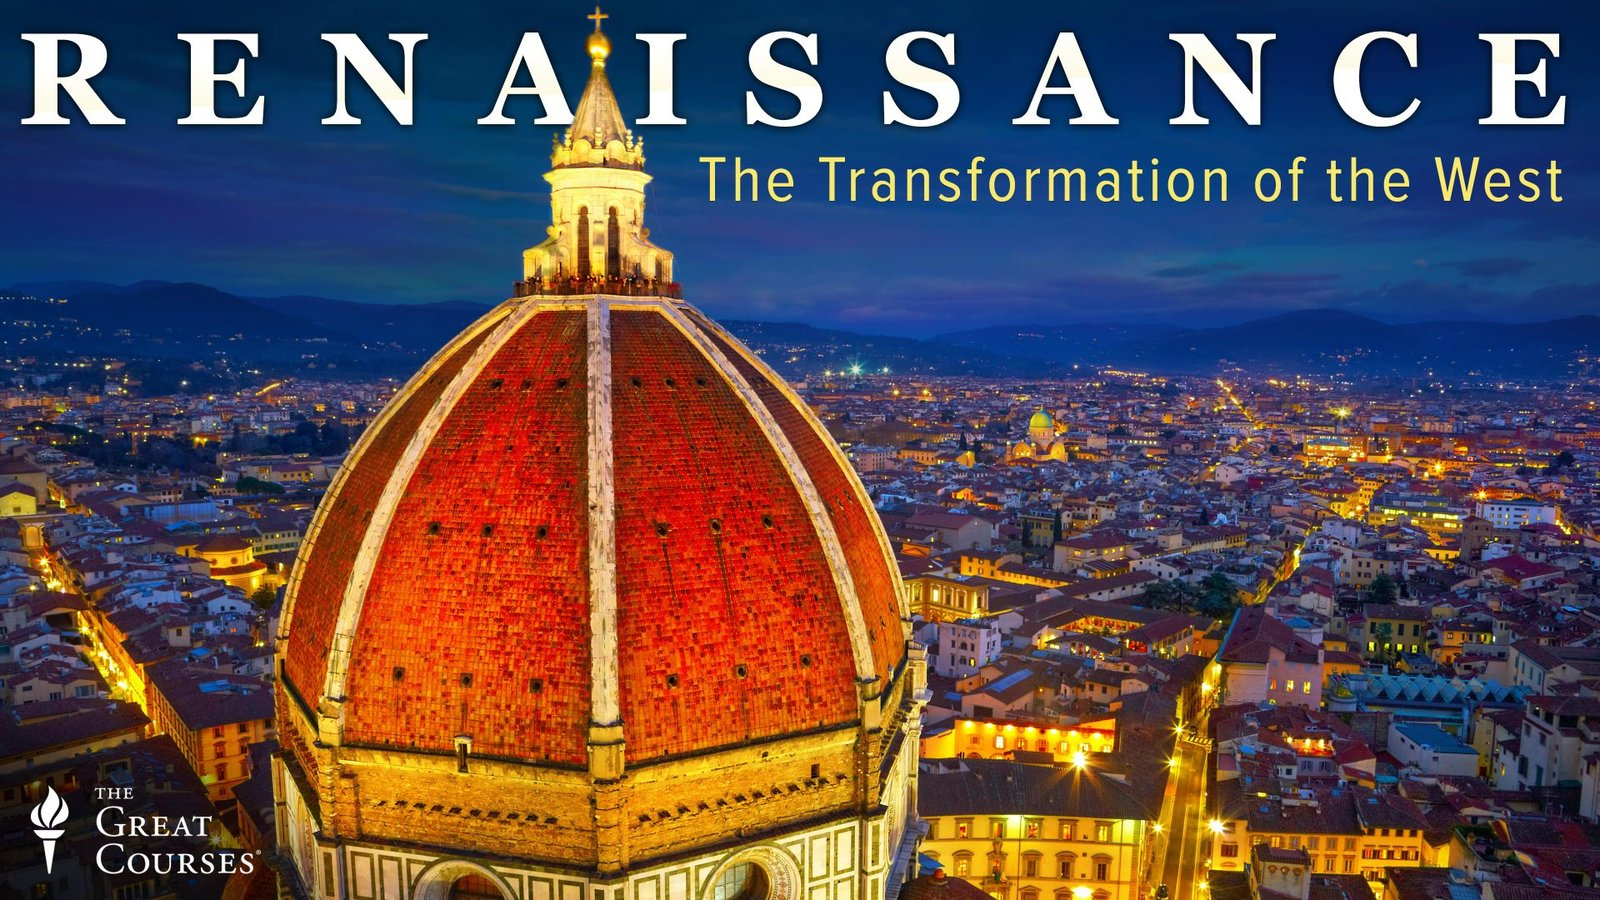 Renaissance: The Transformation of the West